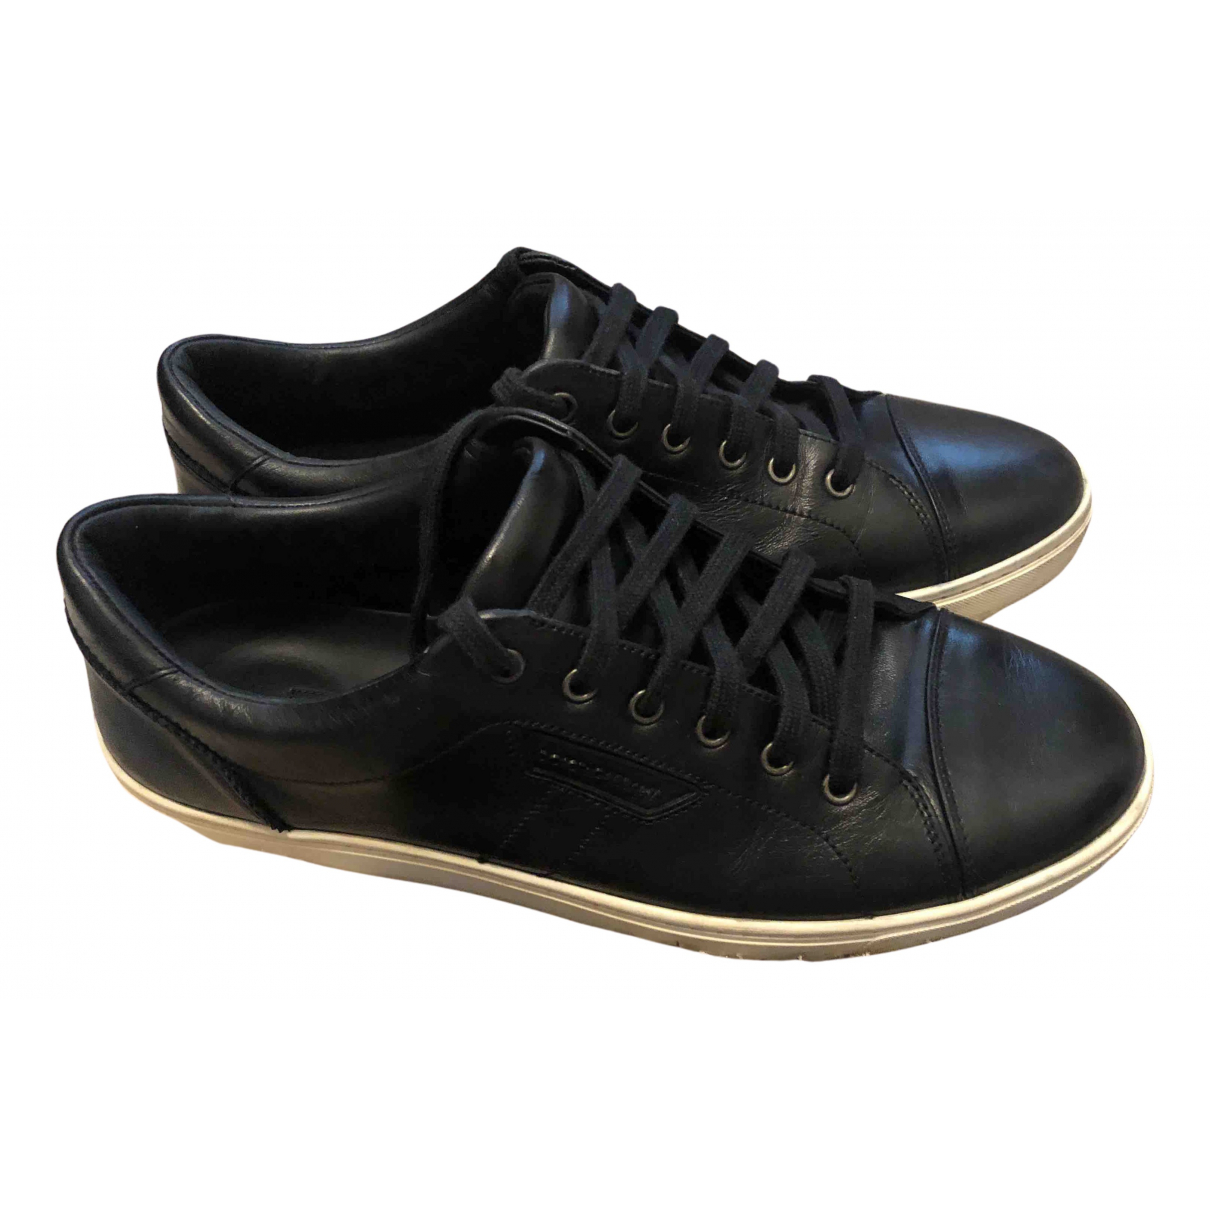 Dolce & Gabbana N Black Leather Trainers for Men 9 UK